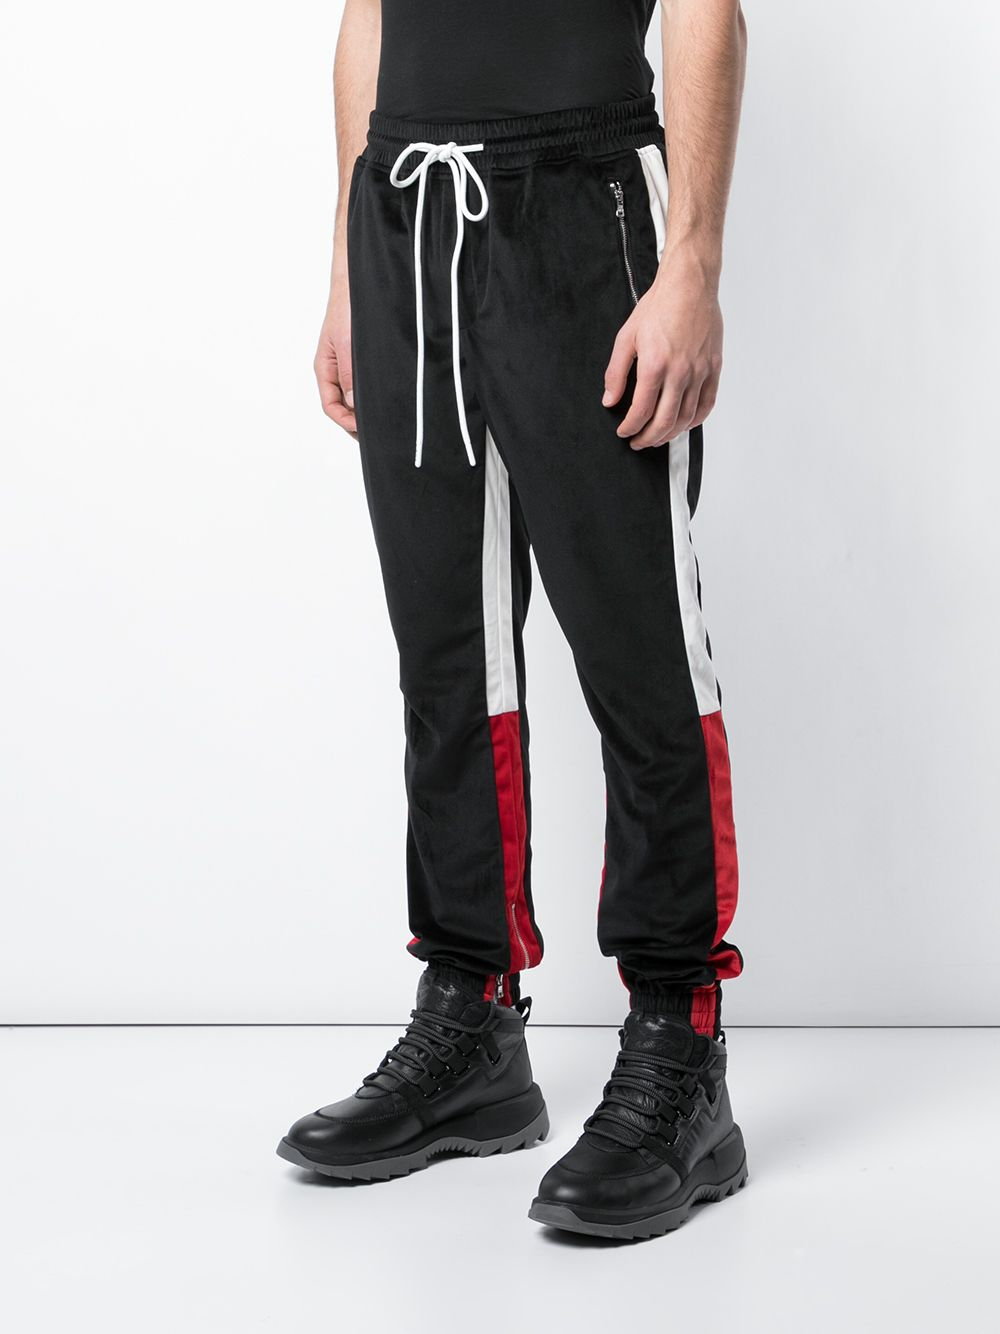 ALL STAR PANT (BLACK/RED)